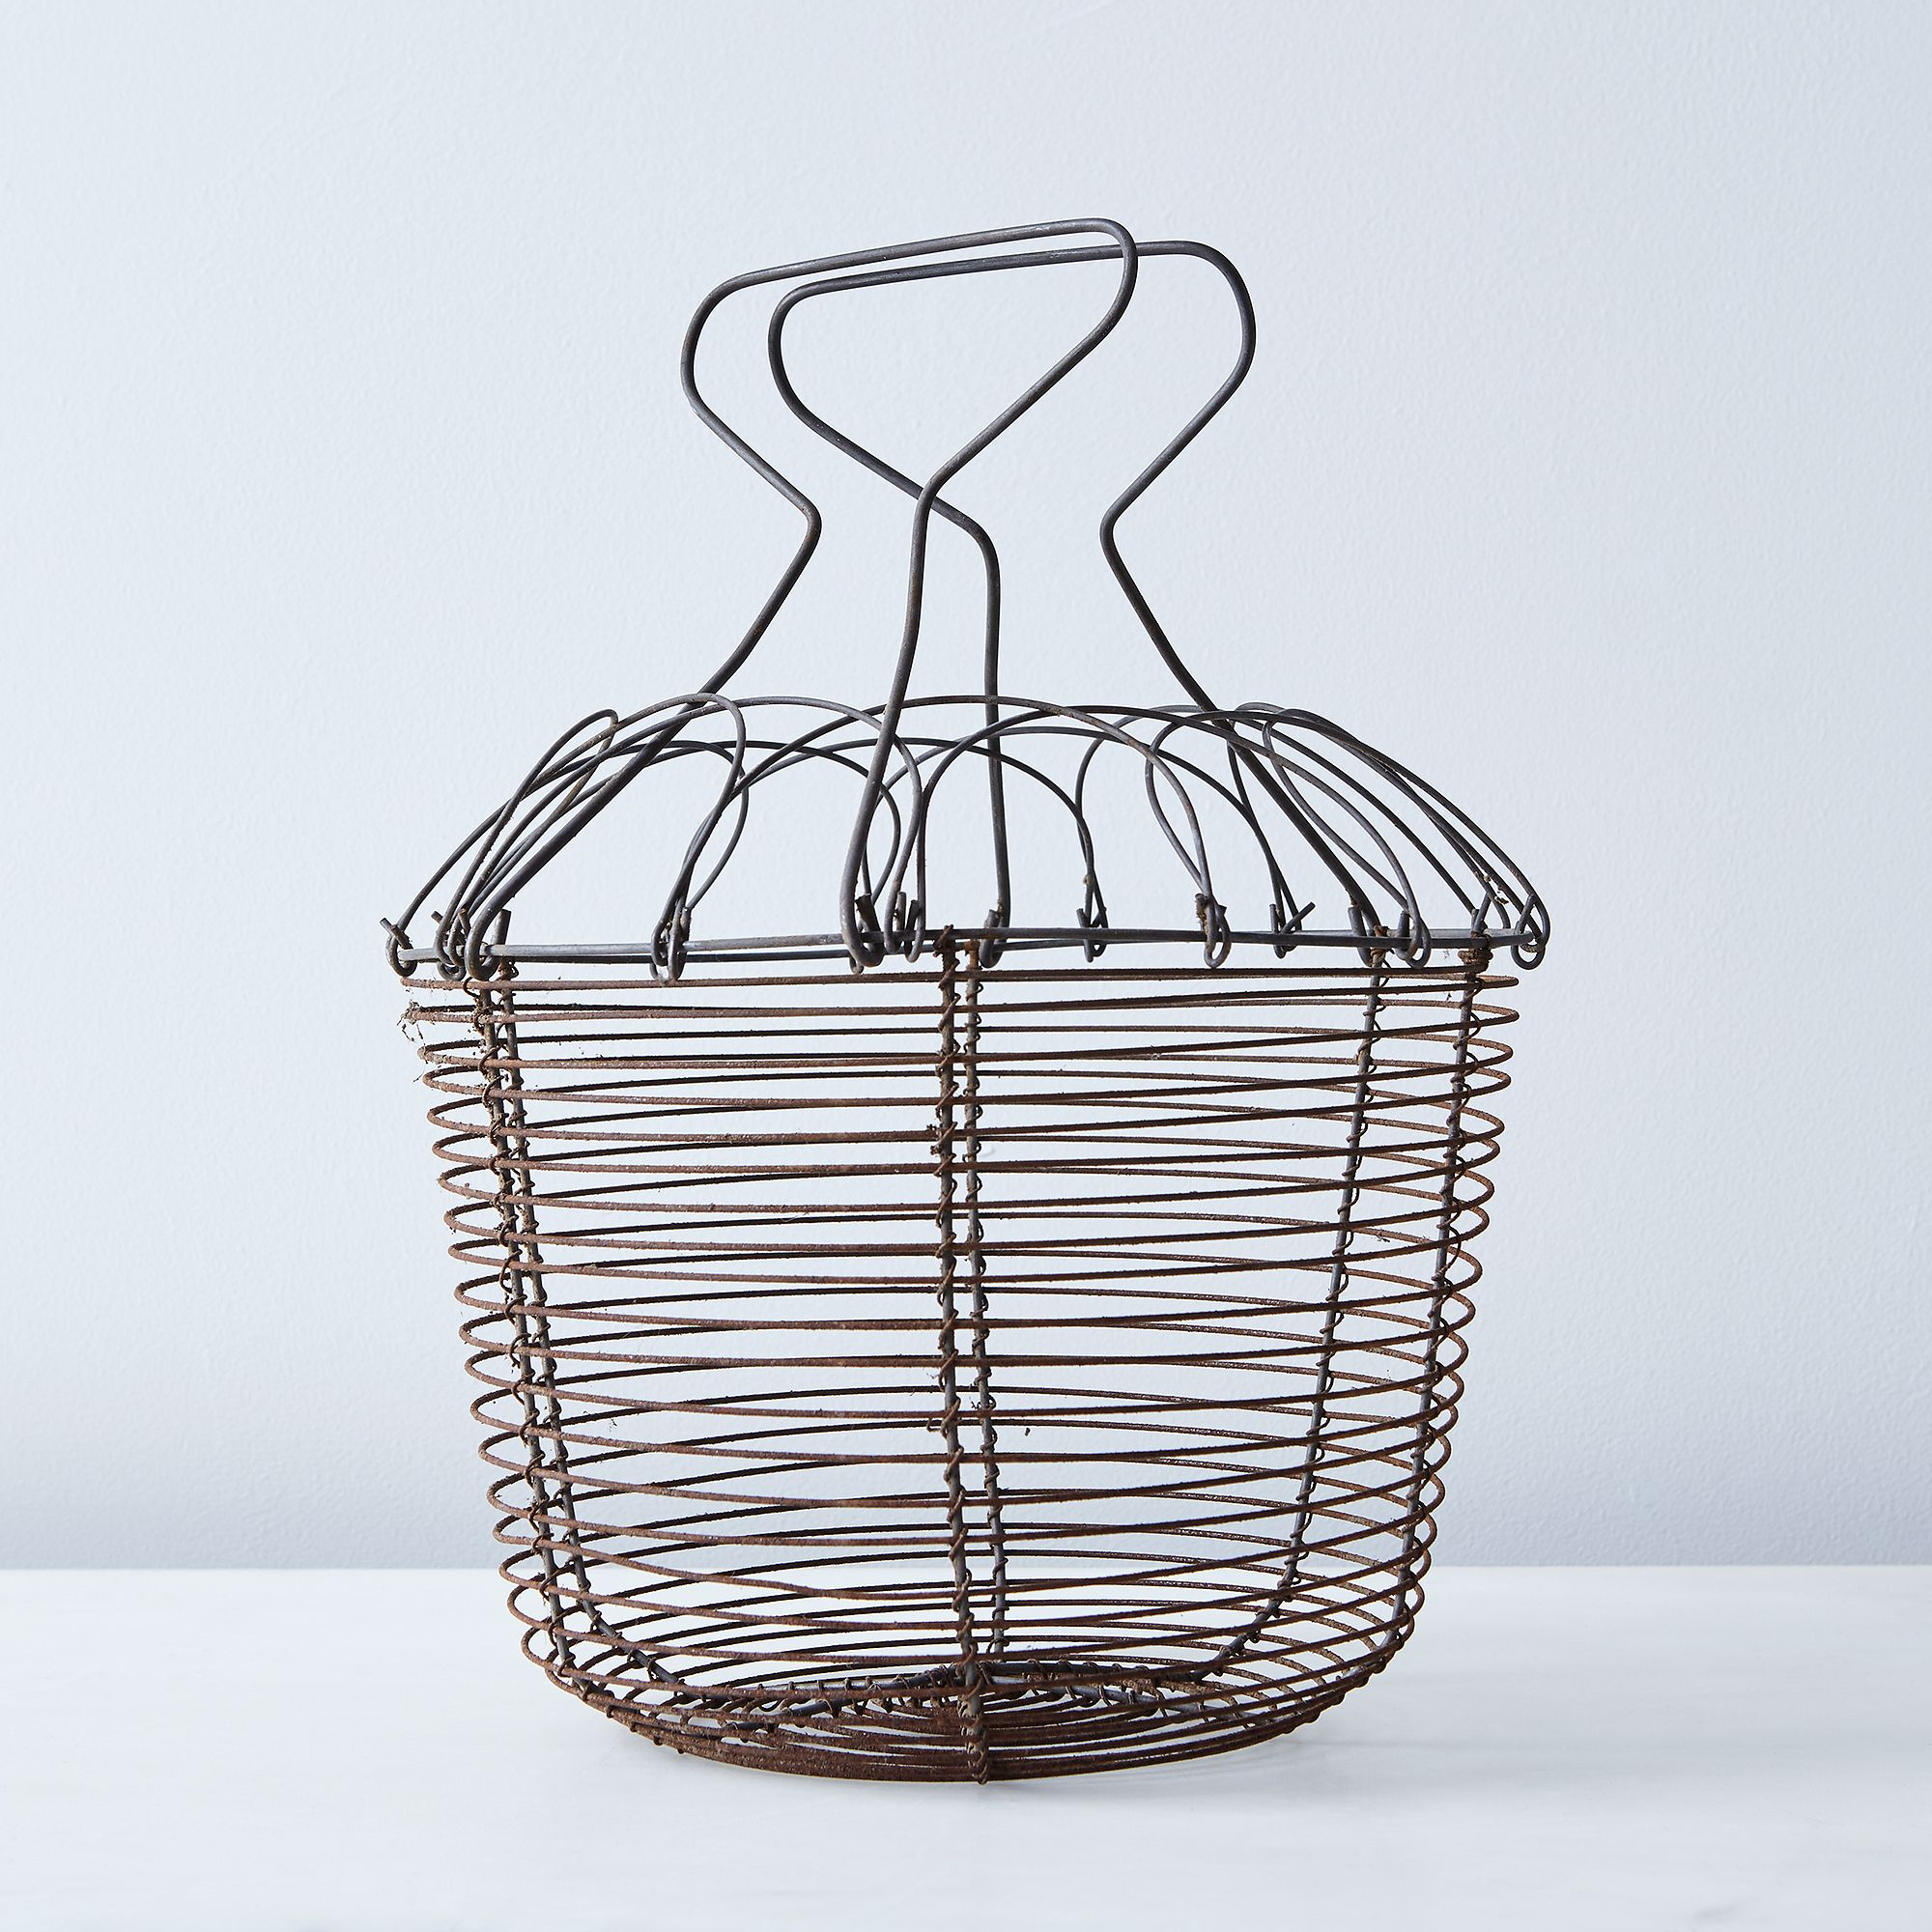 Vintage French Wire Egg Basket on Food52